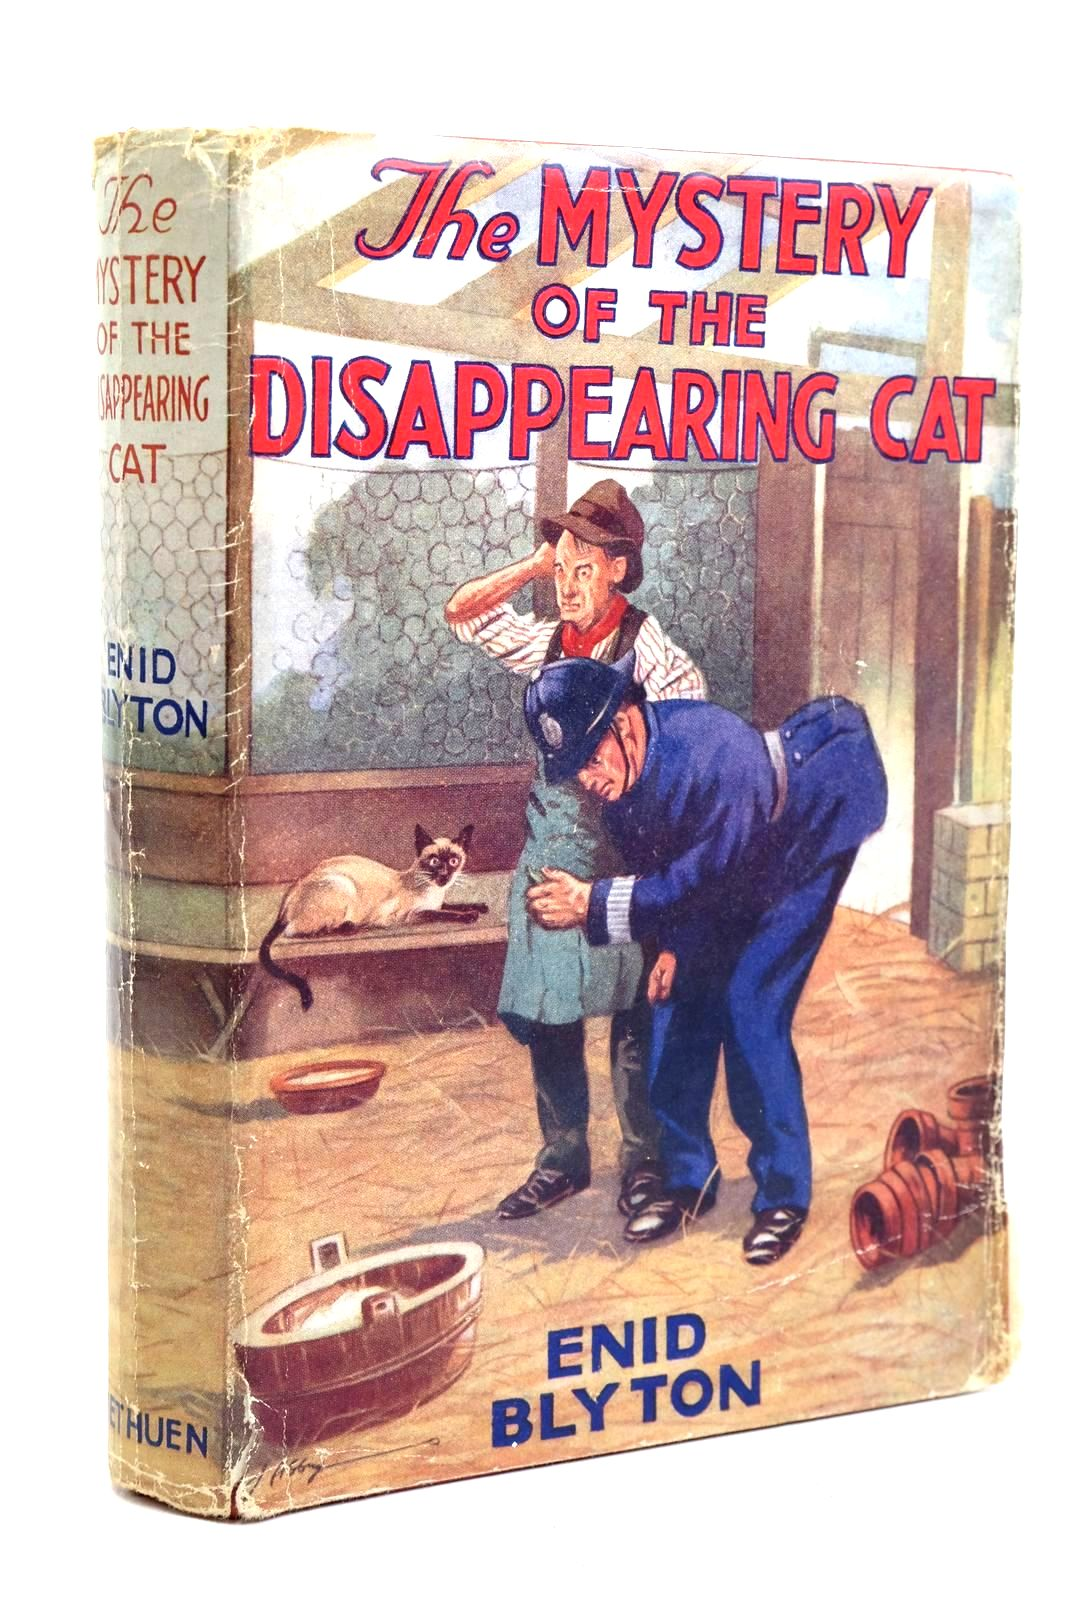 Photo of THE MYSTERY OF THE DISAPPEARING CAT written by Blyton, Enid illustrated by Abbey, J. published by Methuen & Co. Ltd. (STOCK CODE: 1320719)  for sale by Stella & Rose's Books